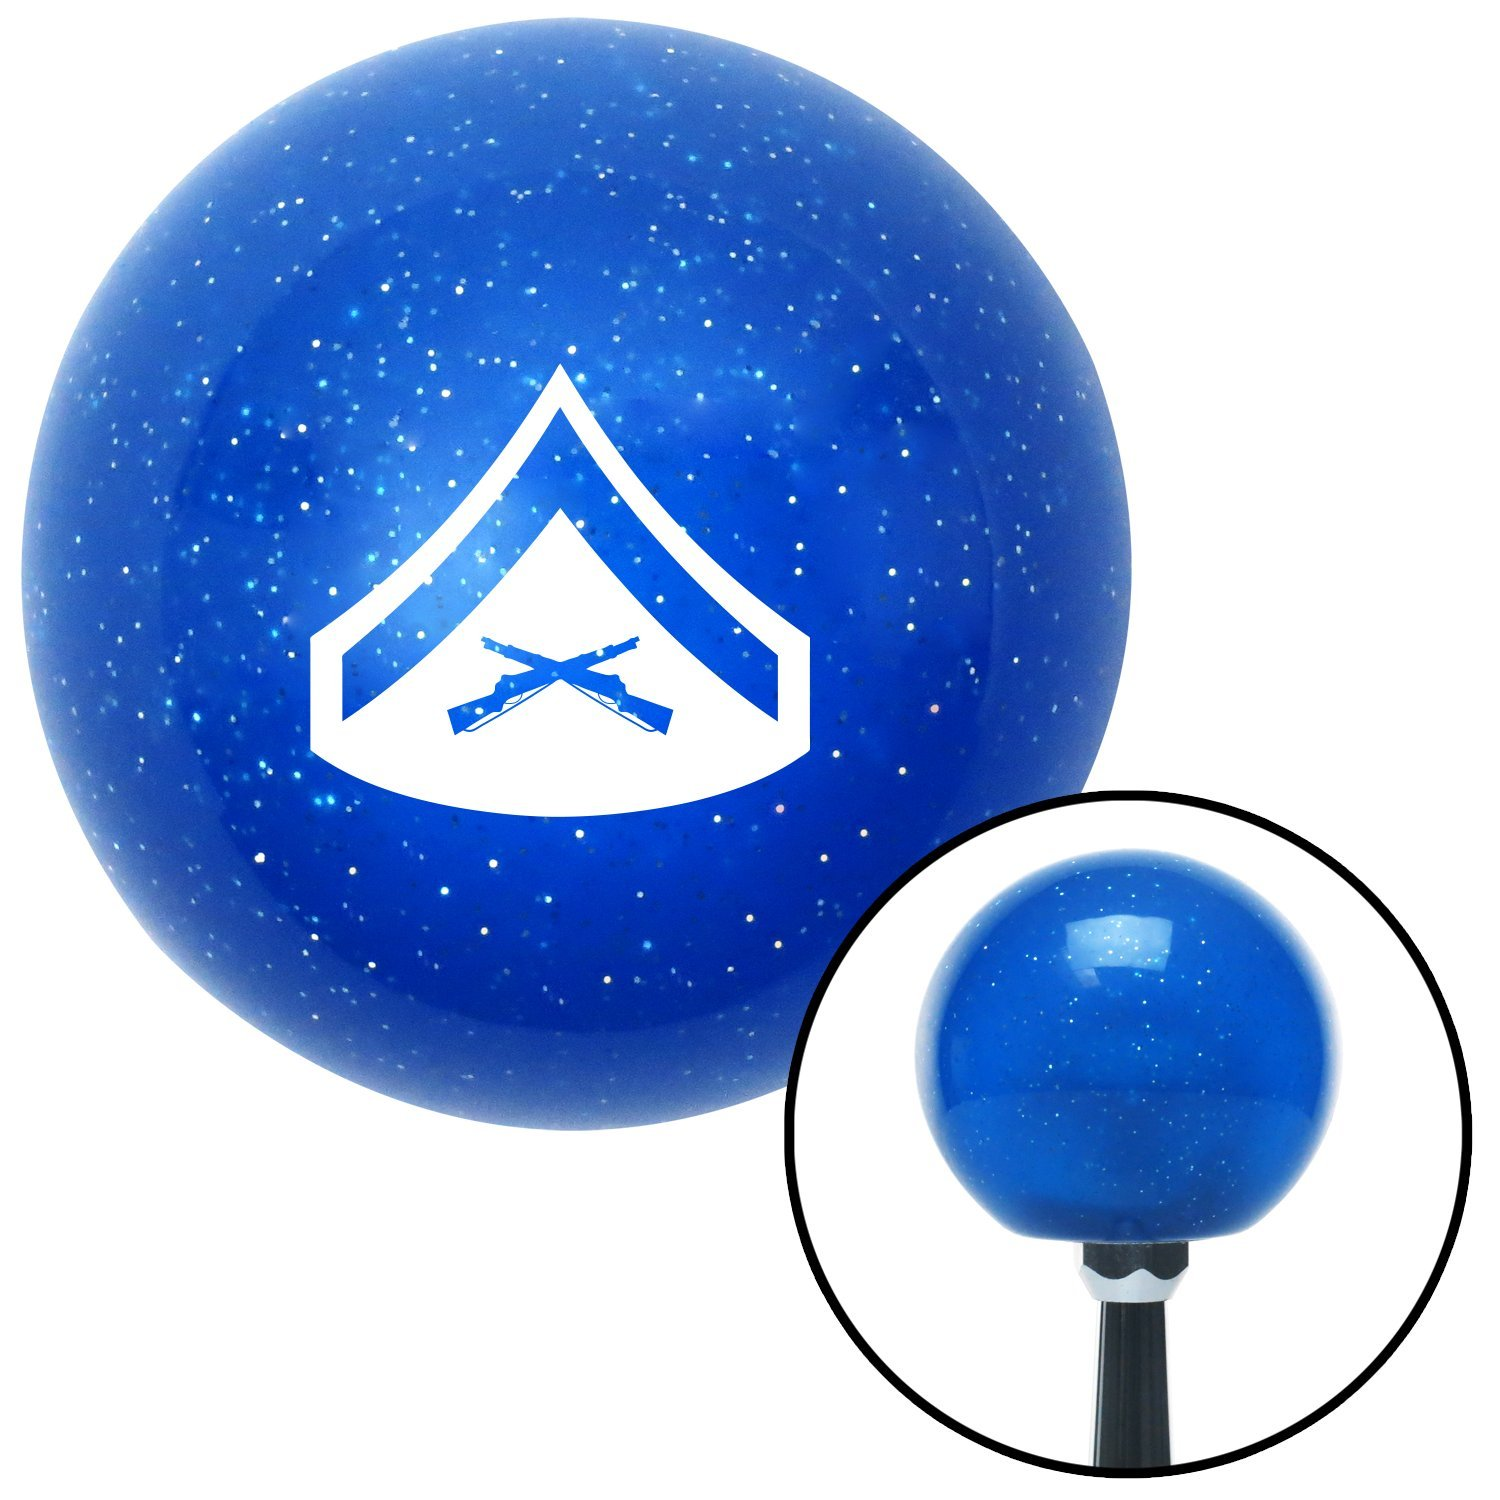 White 02 Lance Corporal American Shifter 26327 Blue Metal Flake Shift Knob